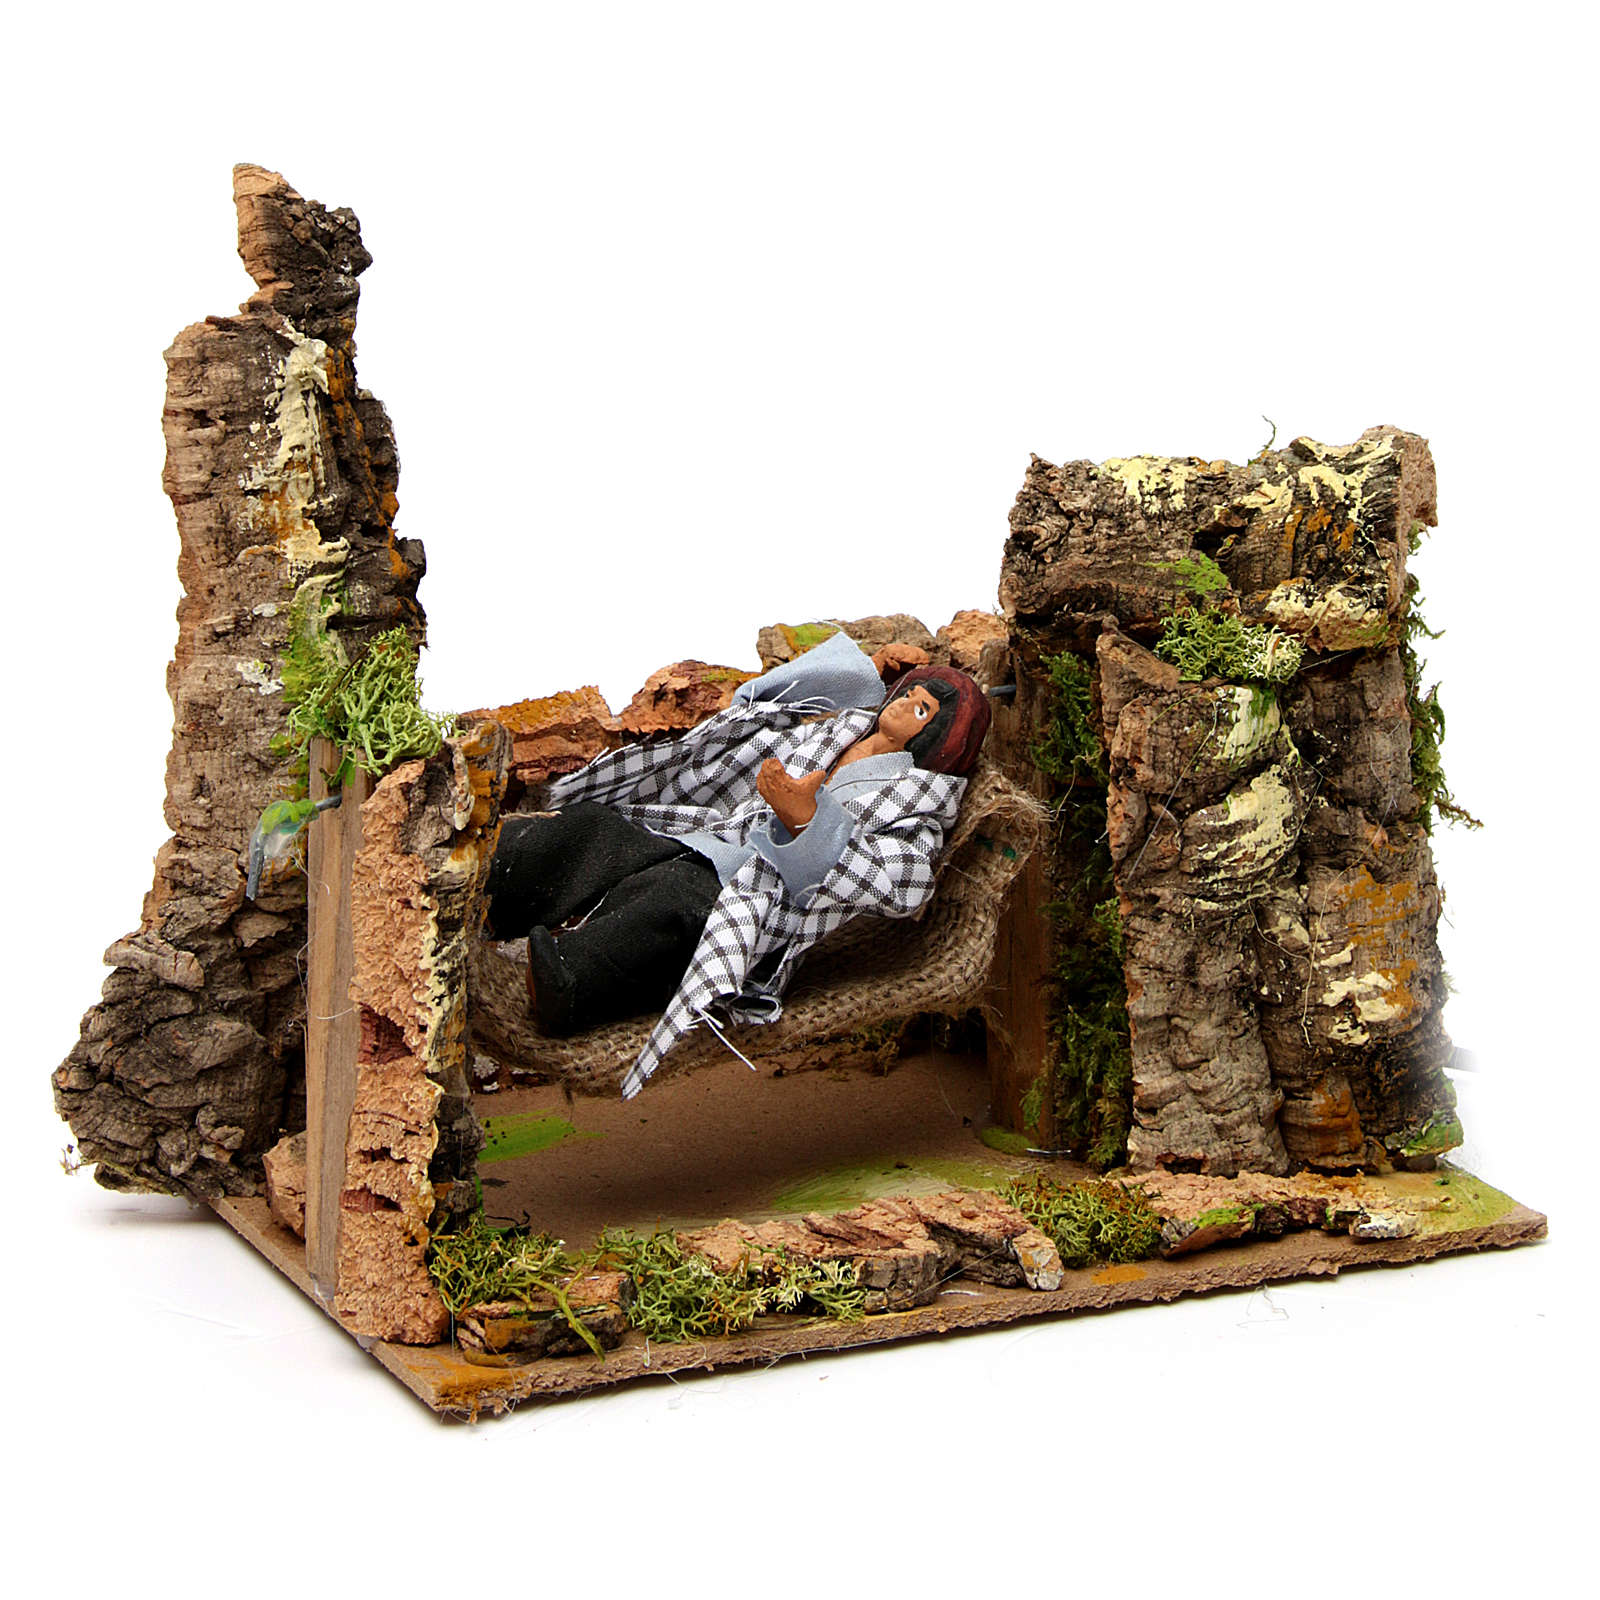 Man on hammock with movement 20x20x15 cm for 10 cm nativity scene 3